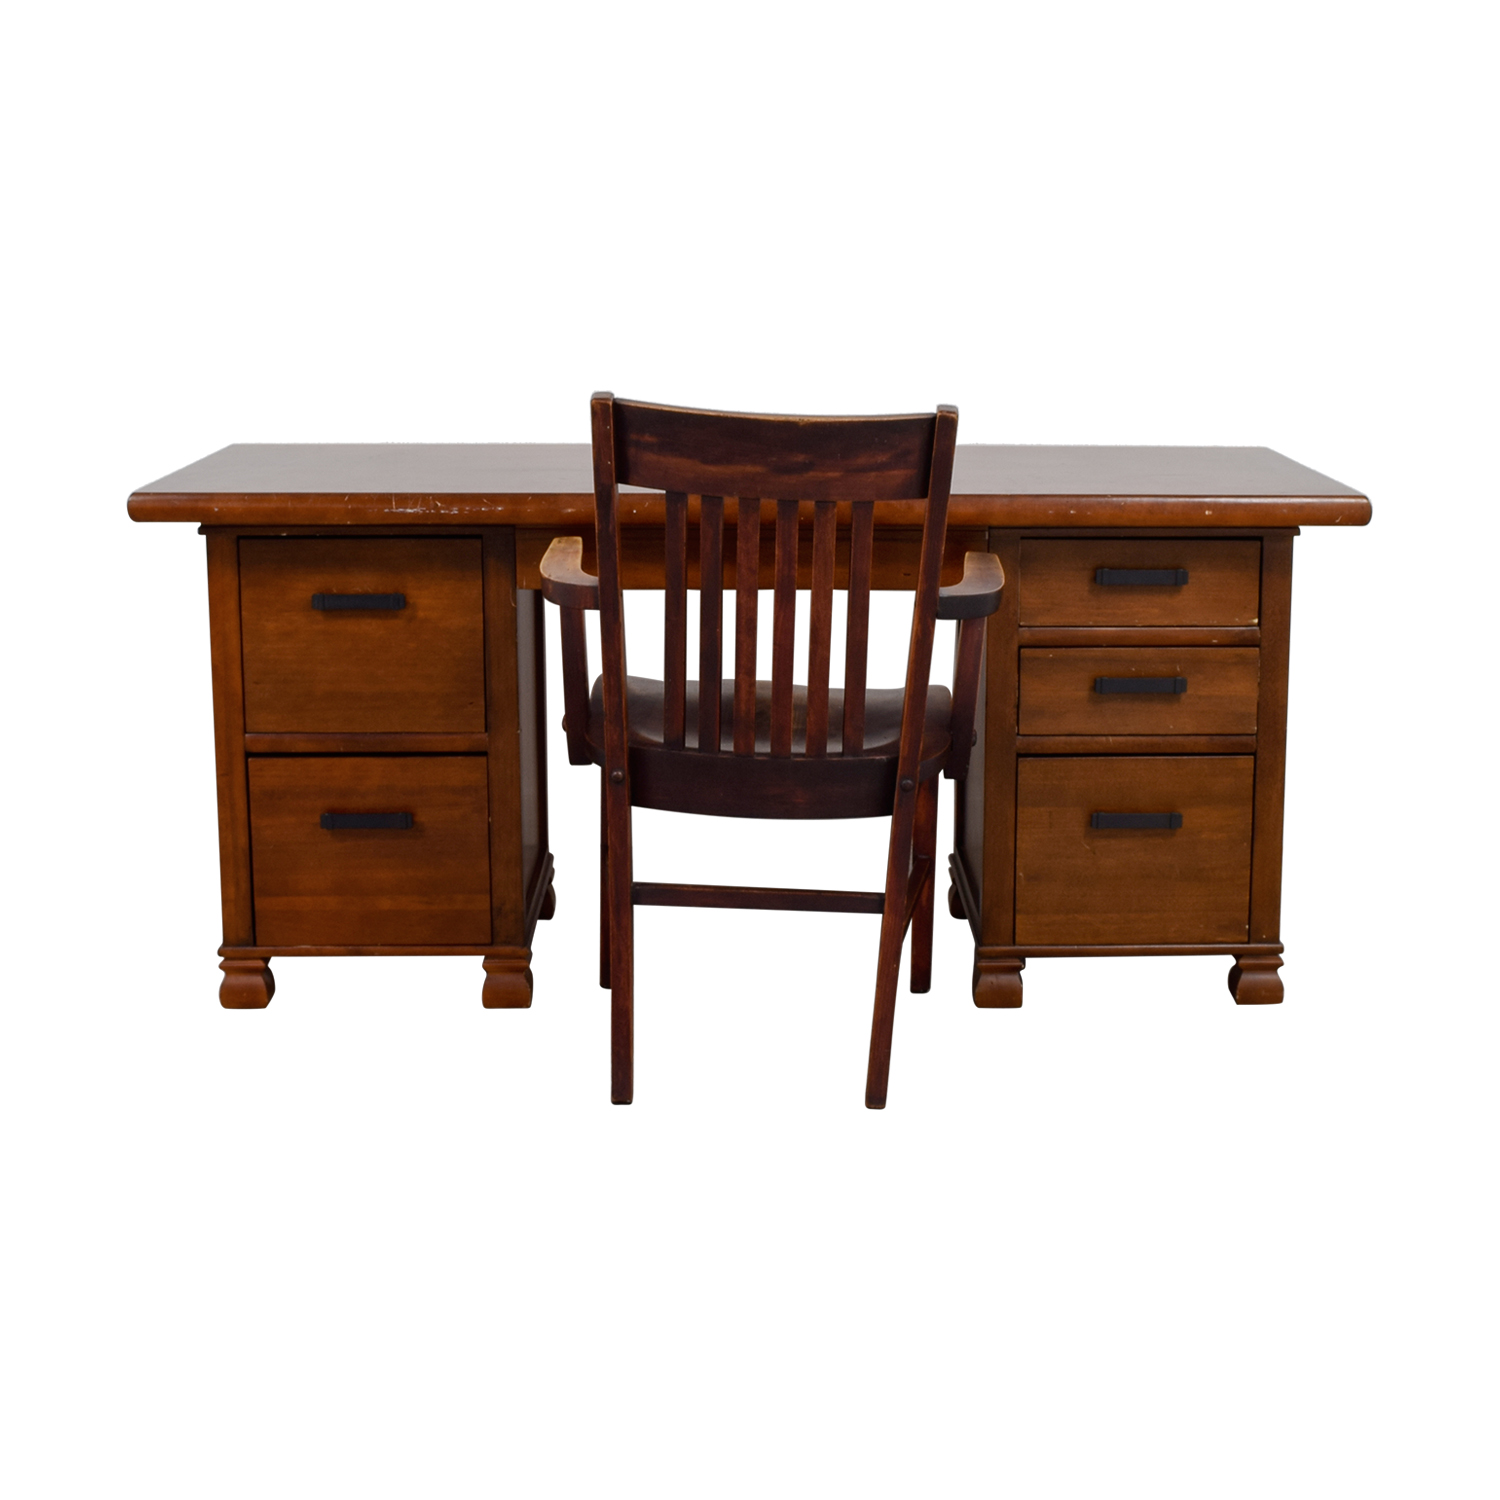 Pottery Barn Pottery Barn Wooden Cherry Desk with Chair coupon